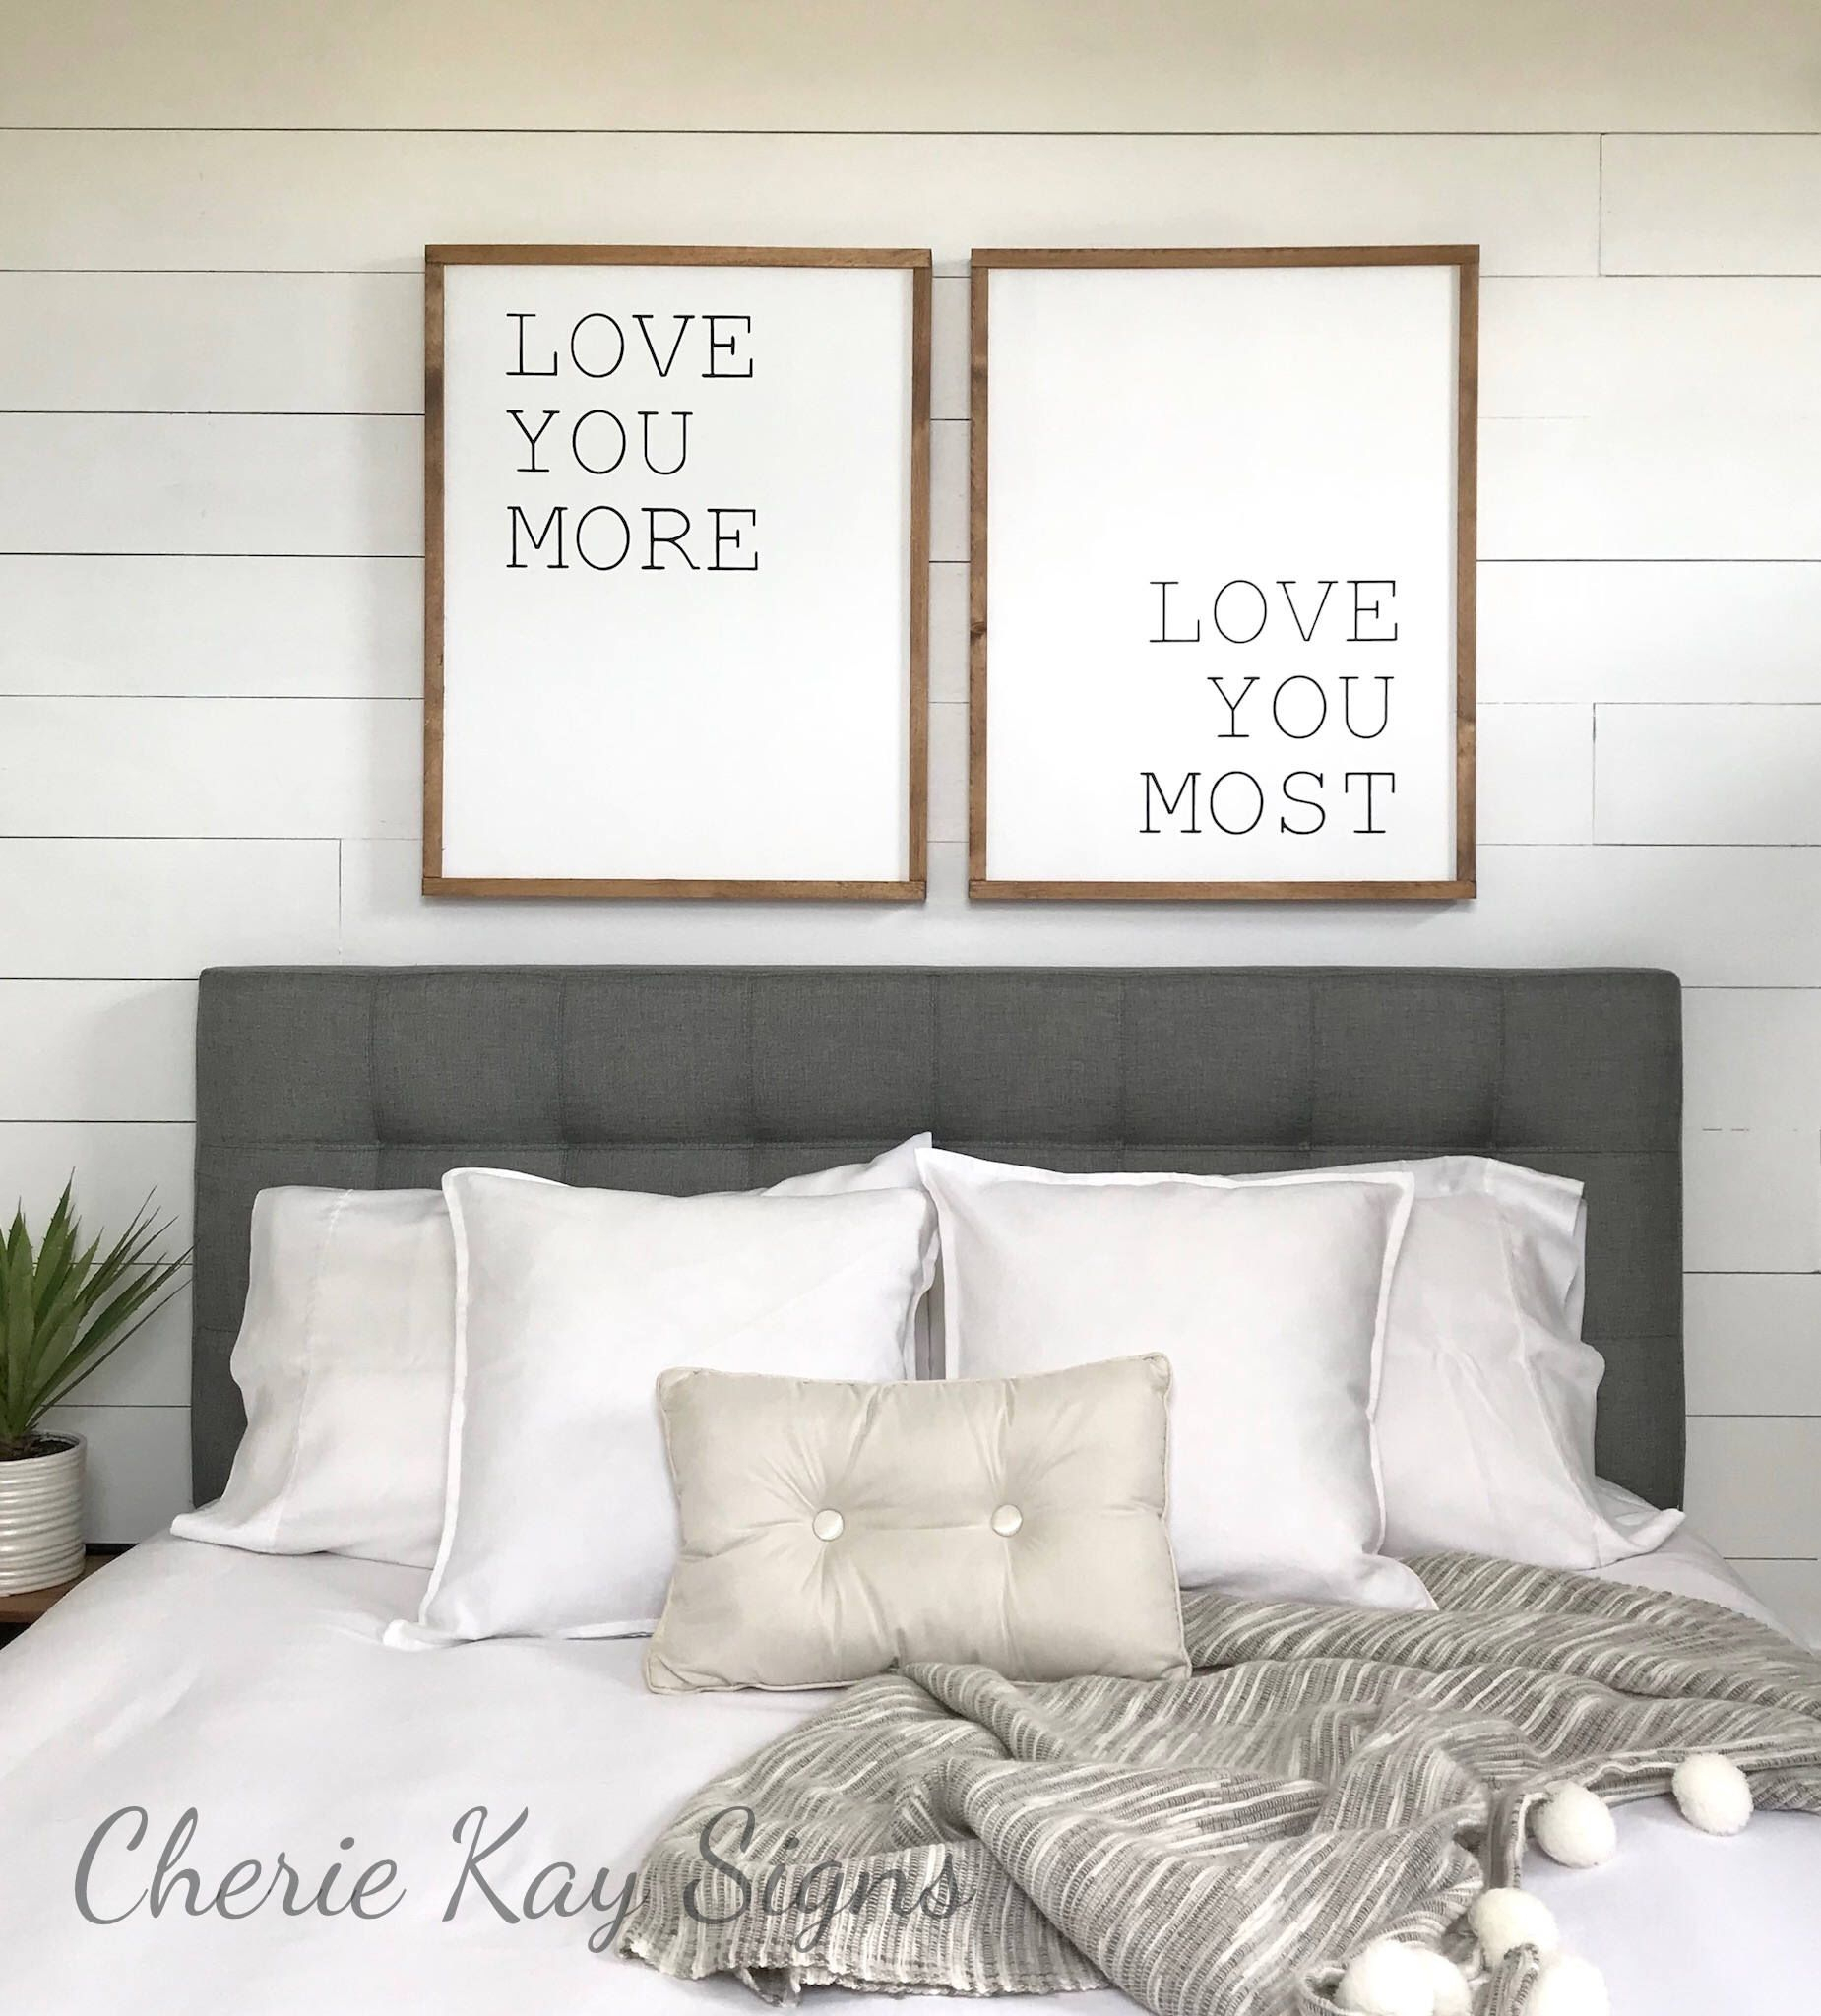 Master Bedroom Wall Decor | Love You More Love You Most Sign for 'love You More' Wood Wall Decor (Image 29 of 30)